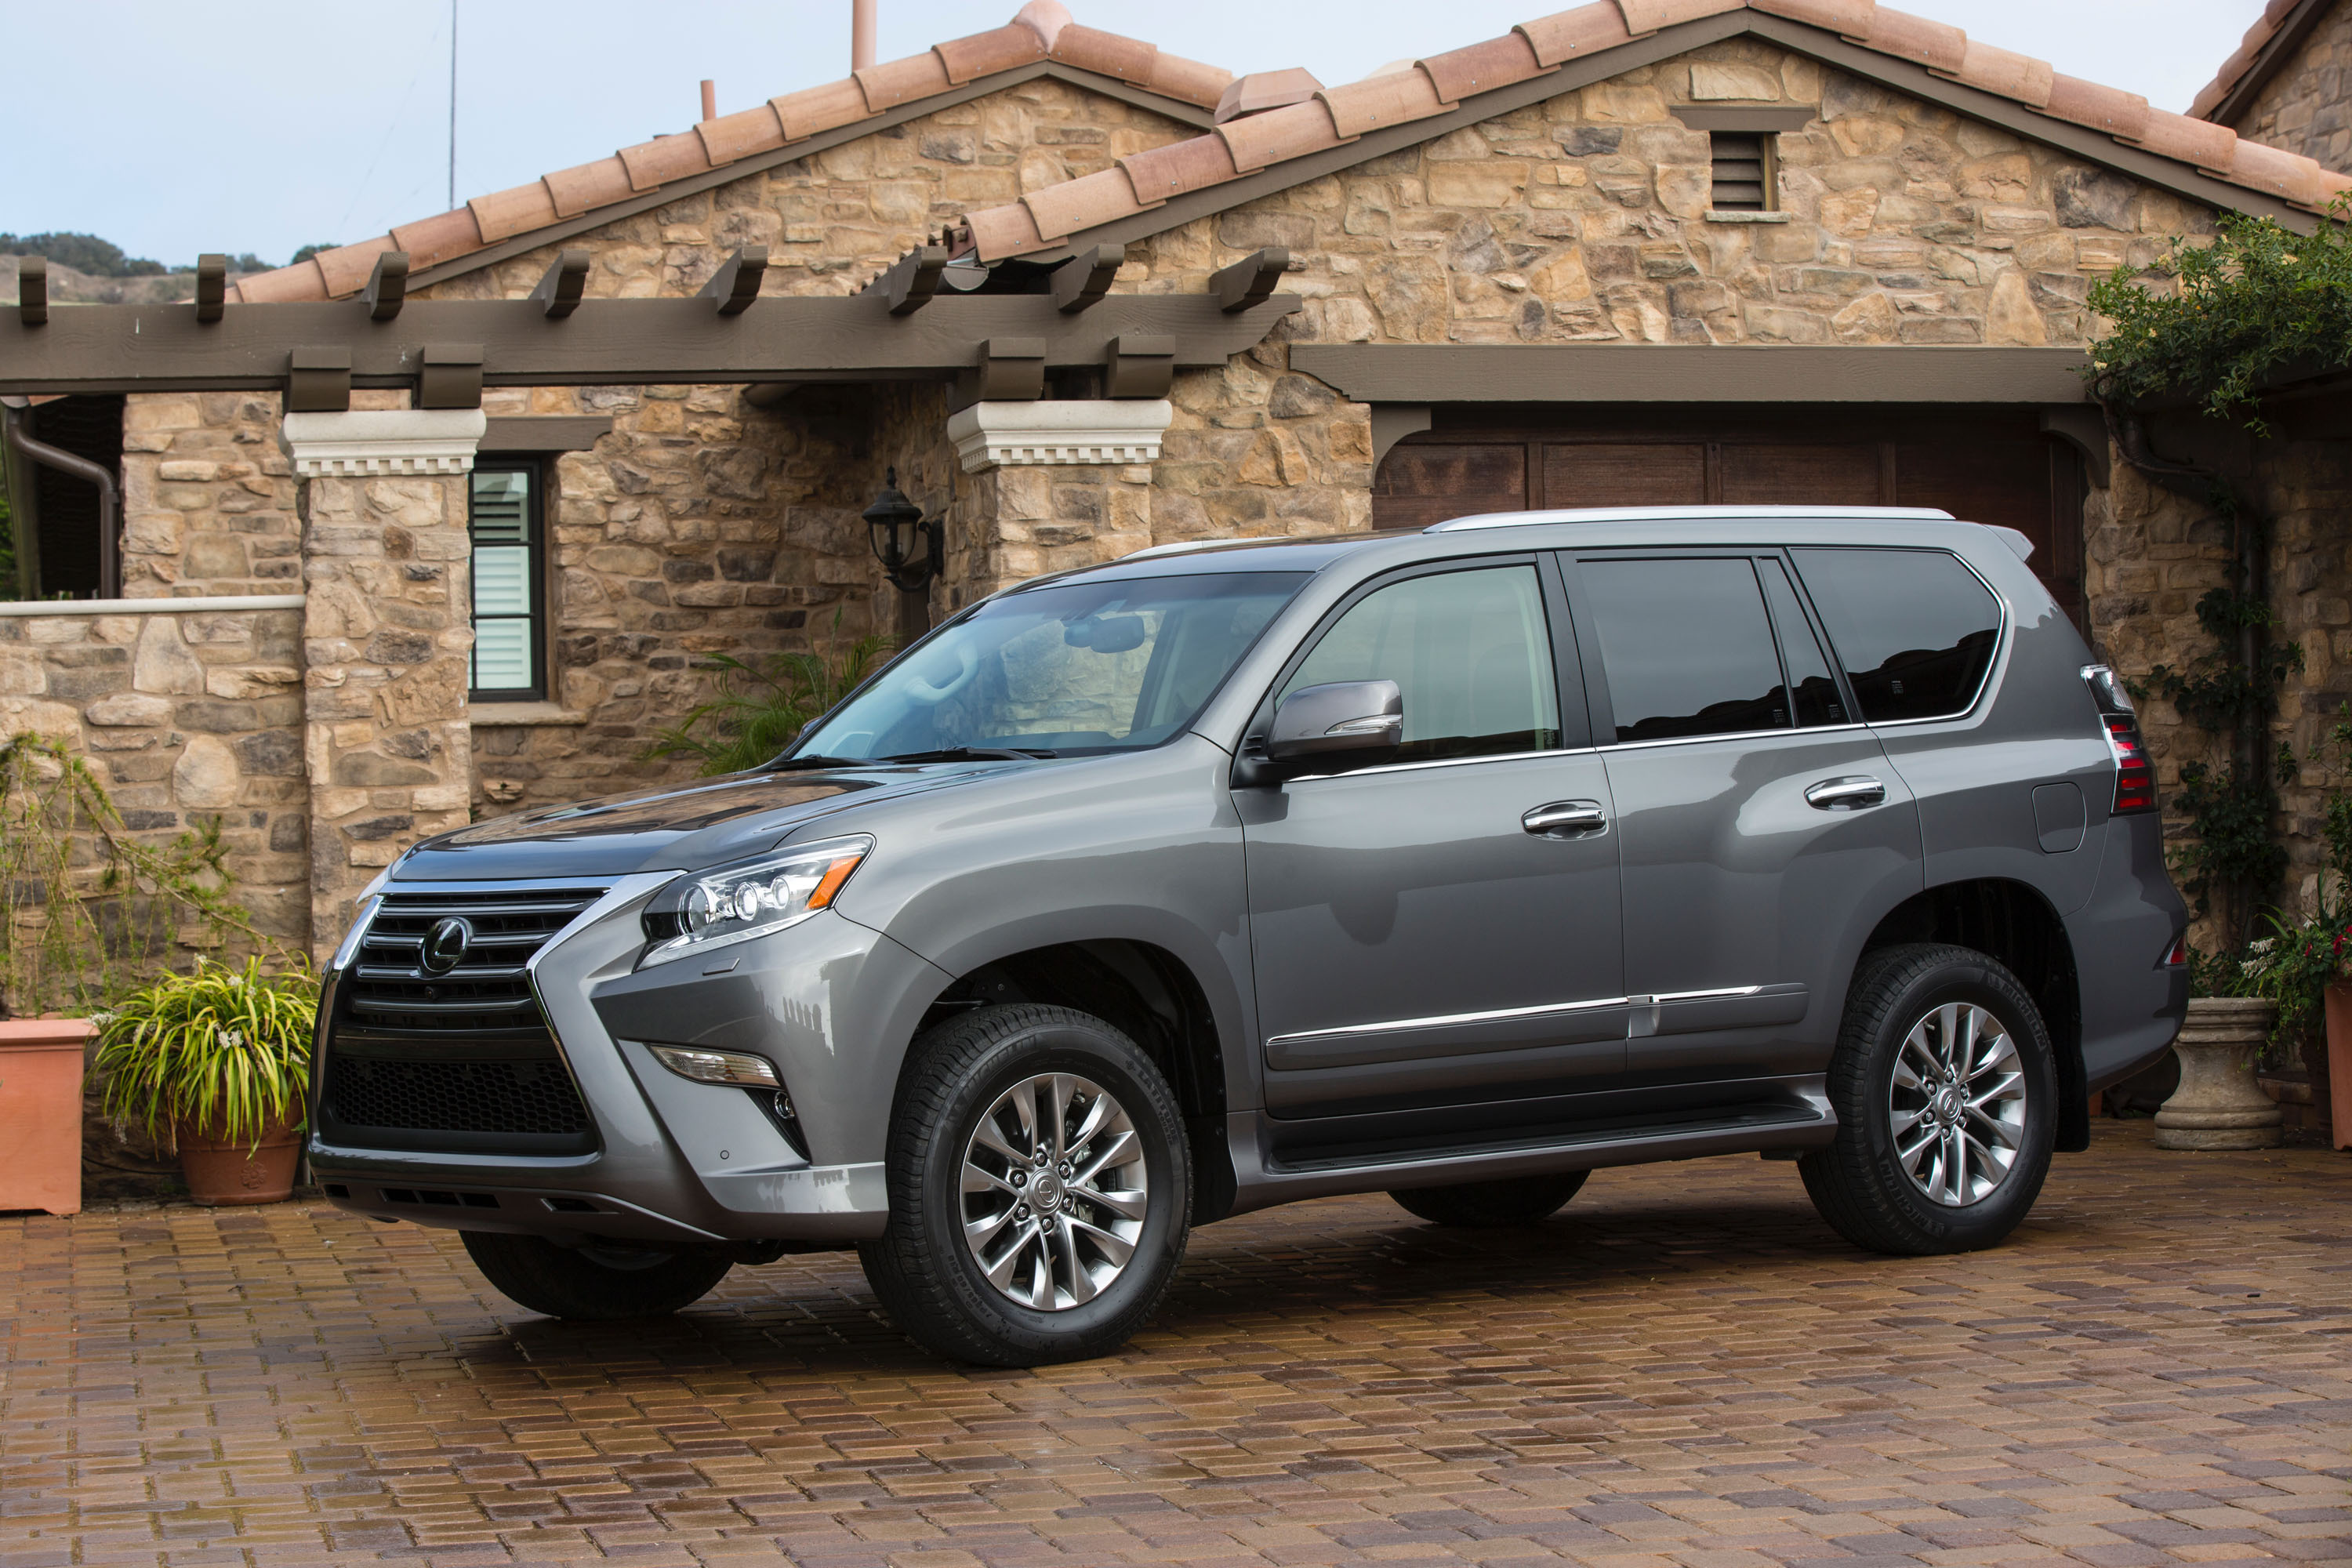 2017 Lexus GX 460 Features Review The Car Connection